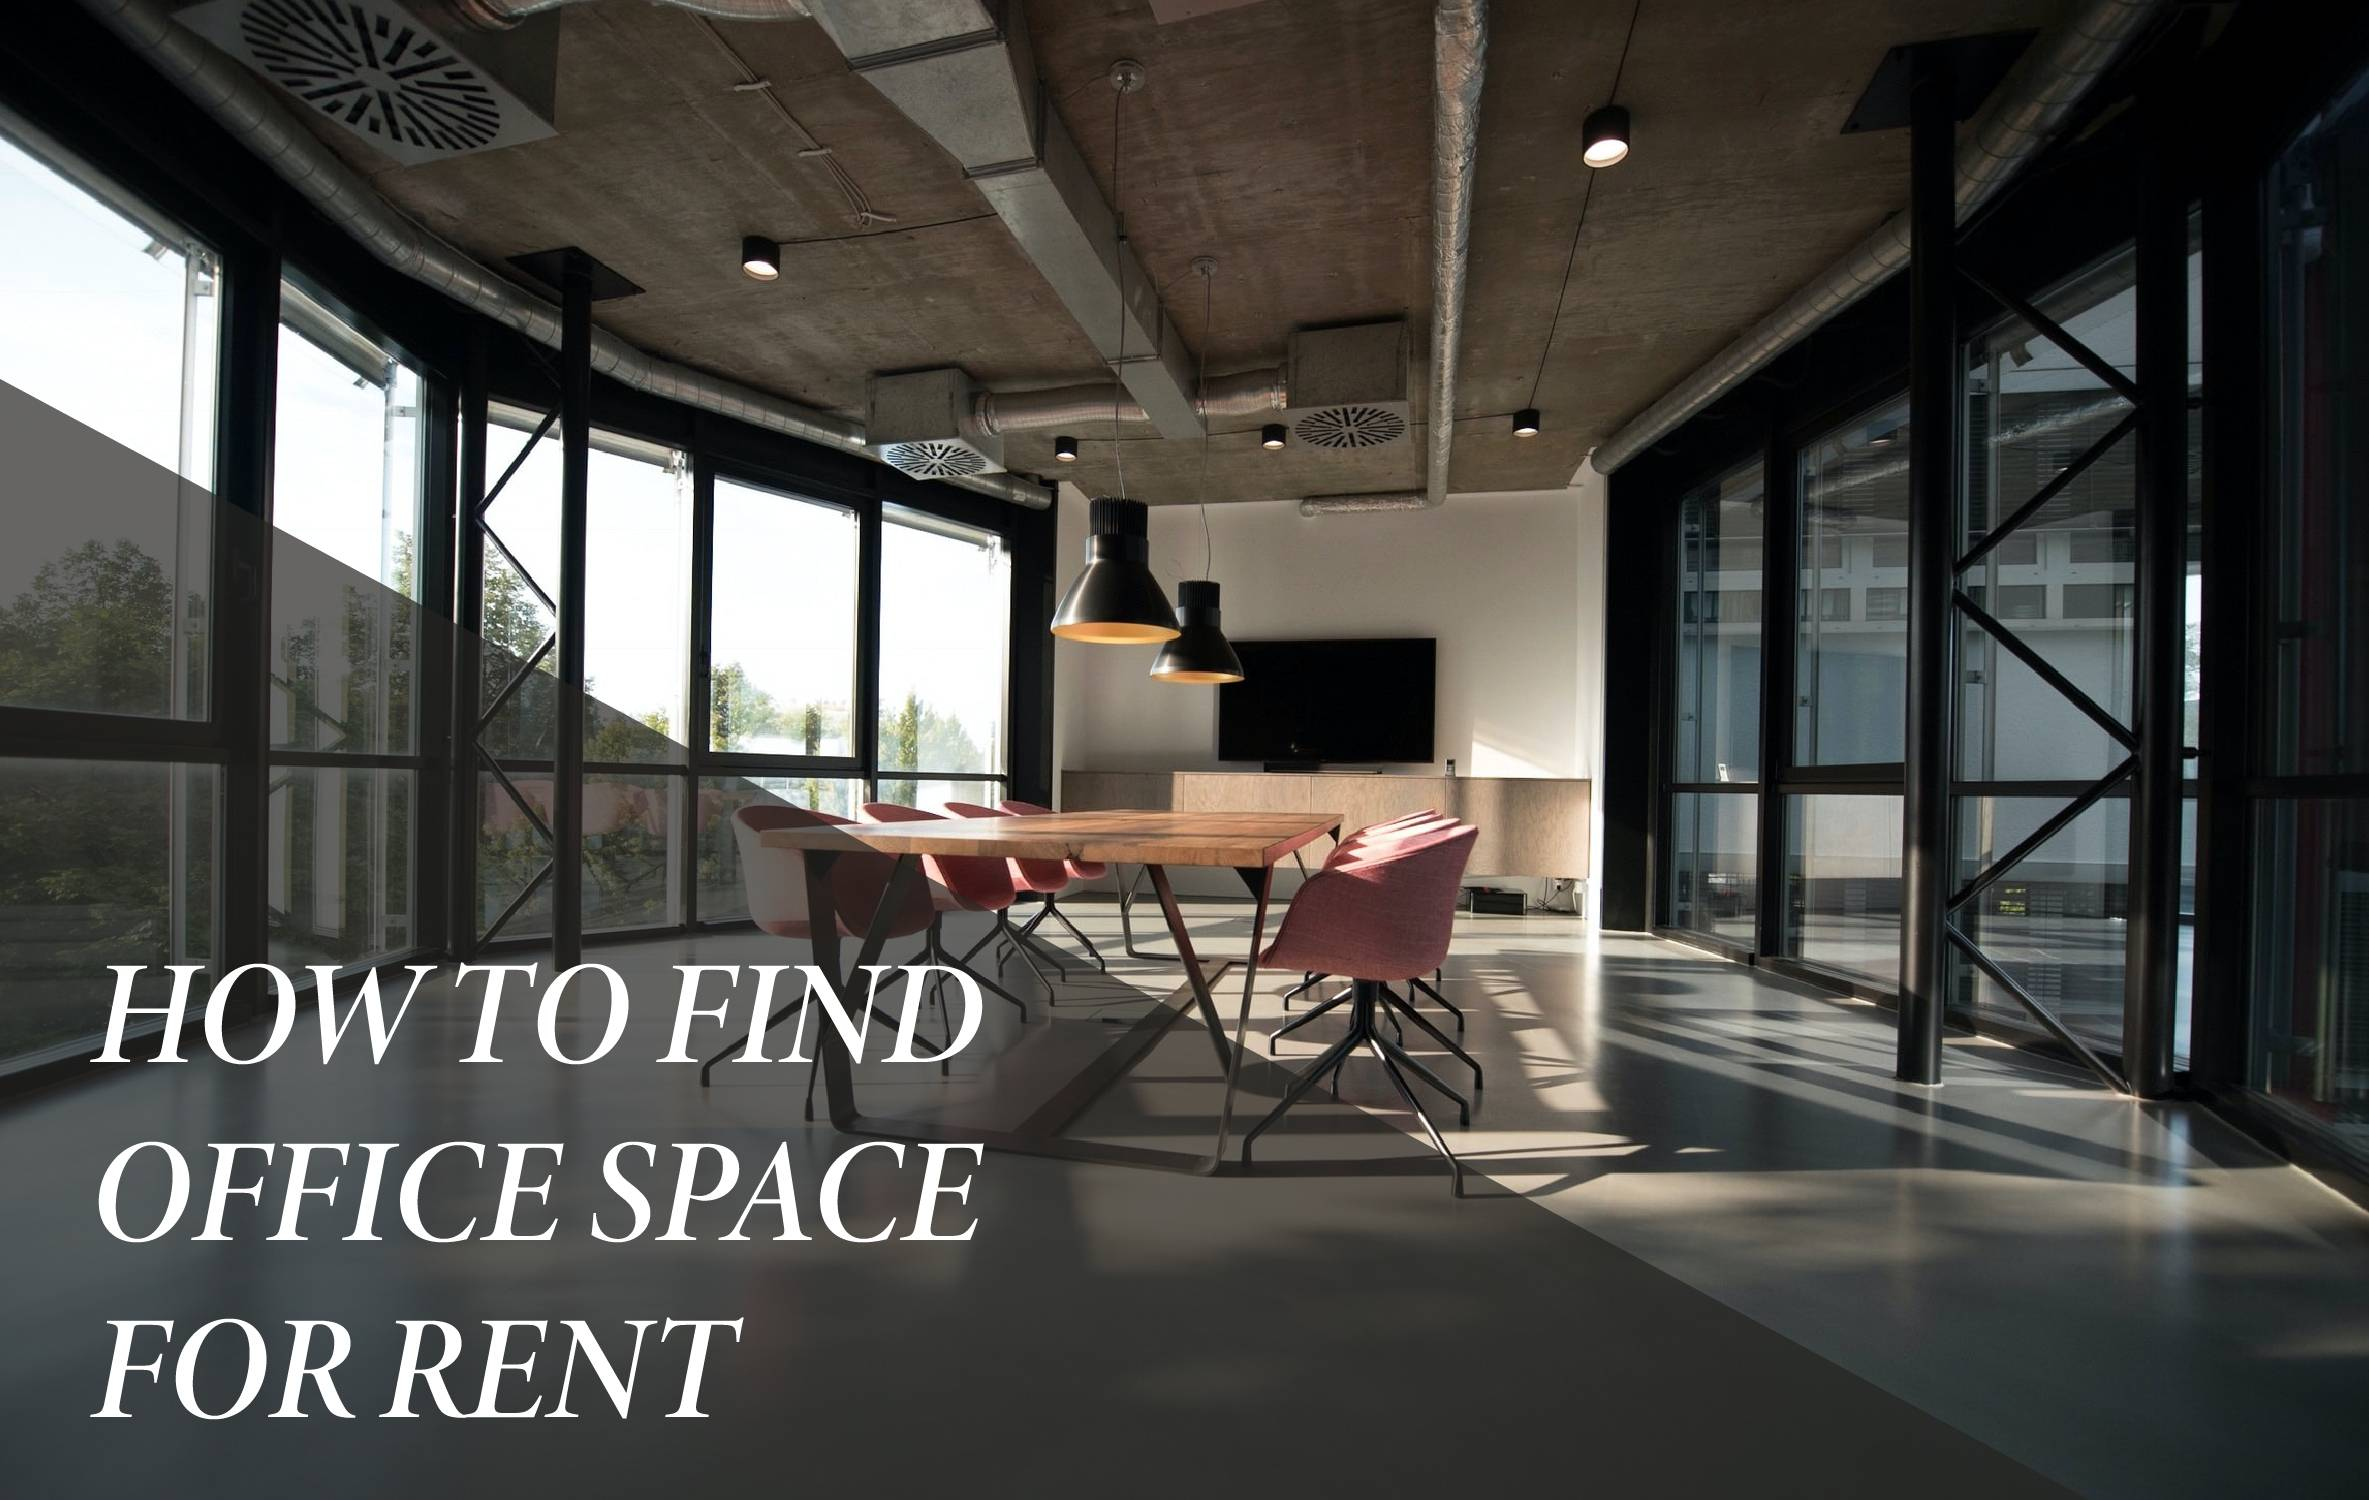 How to find office space for rent